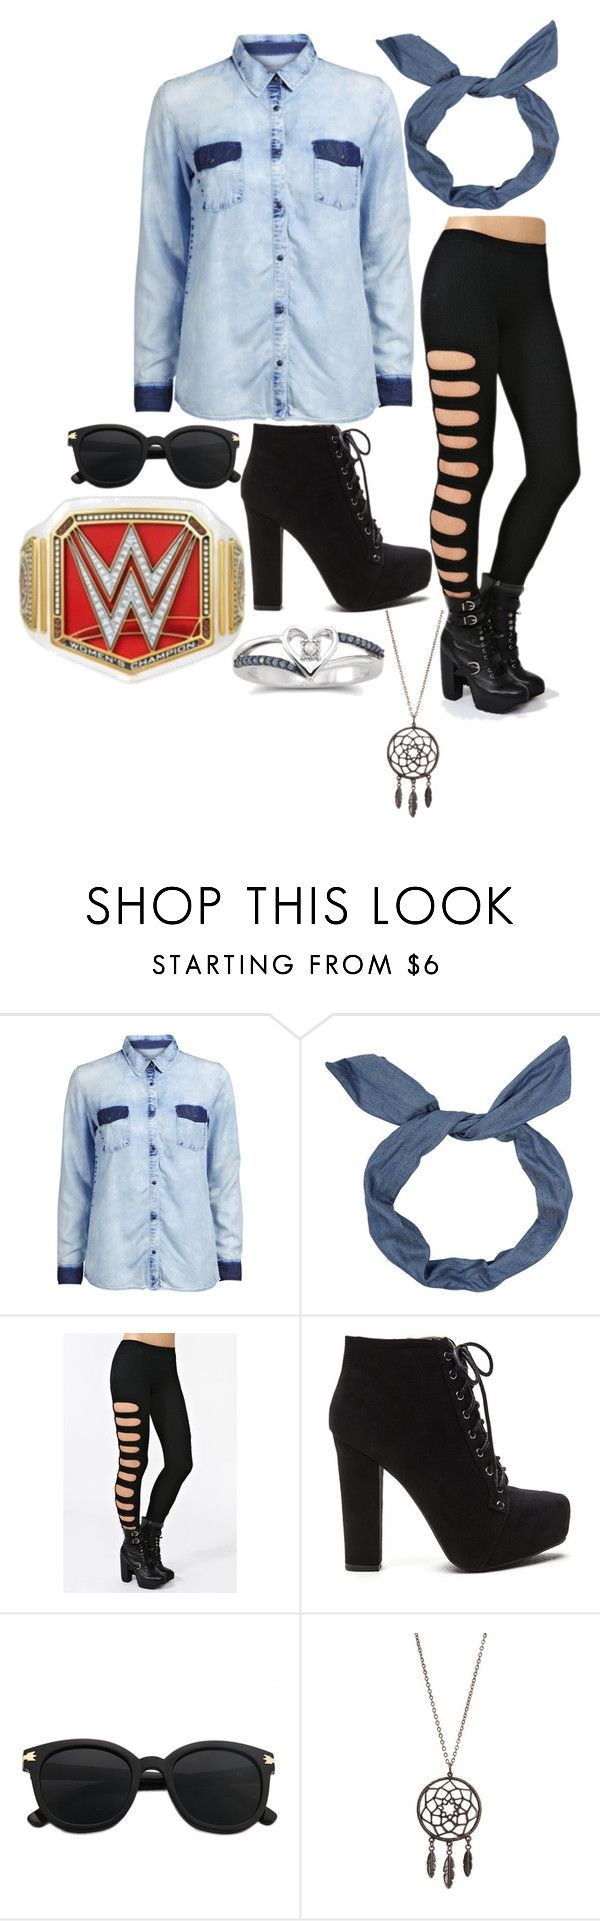 """First Meeting With Colin Cassady"" by thedarkestofhearts ❤ liked on Polyvore featuring ONLY"